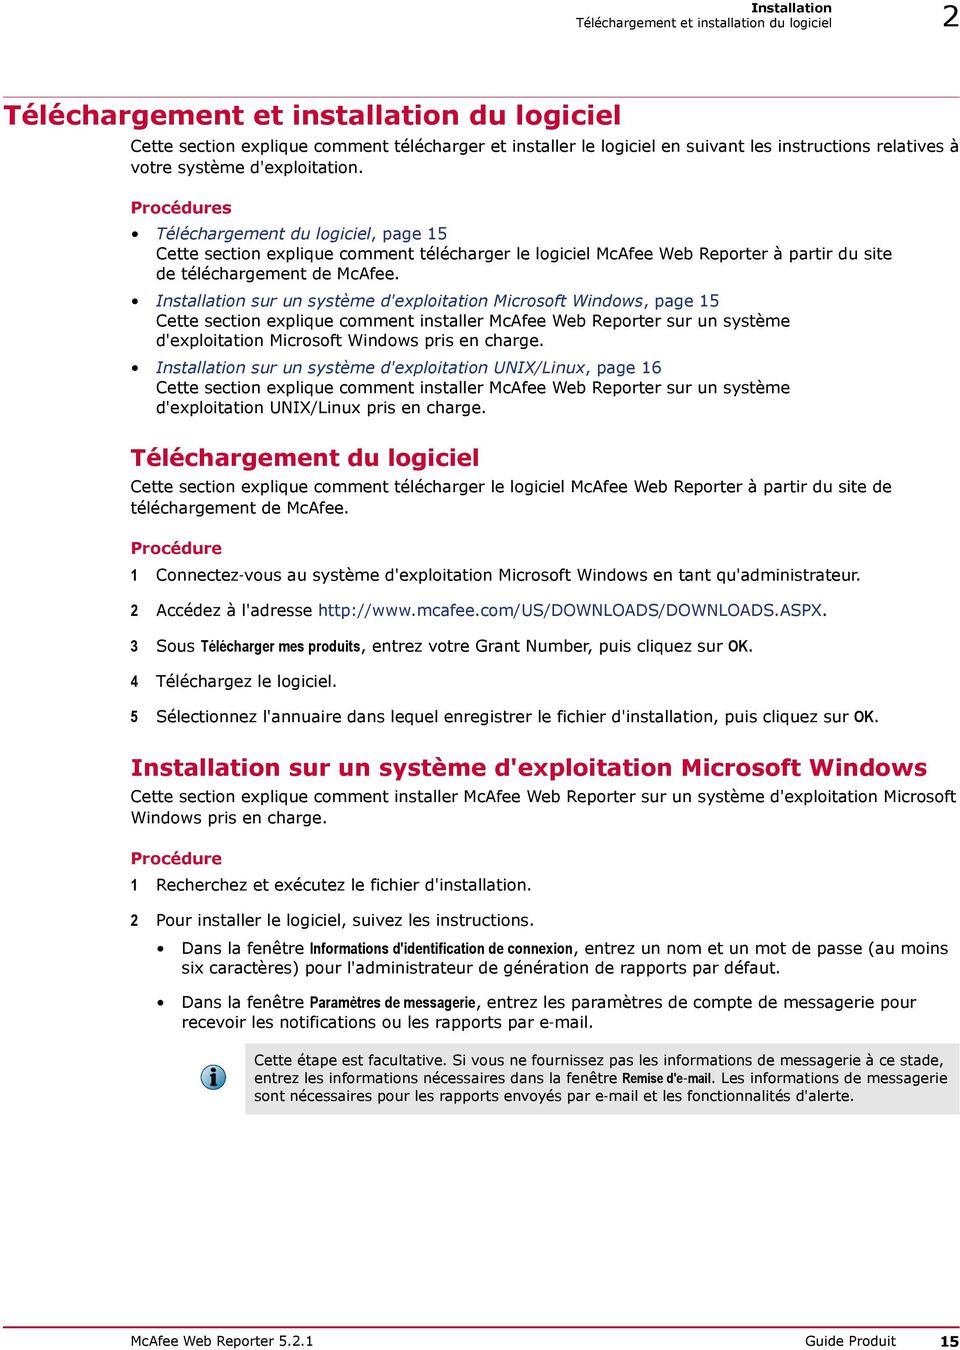 Installation sur un système d'exploitation Microsoft Windows, page 15 Cette section explique comment installer McAfee Web Reporter sur un système d'exploitation Microsoft Windows pris en charge.